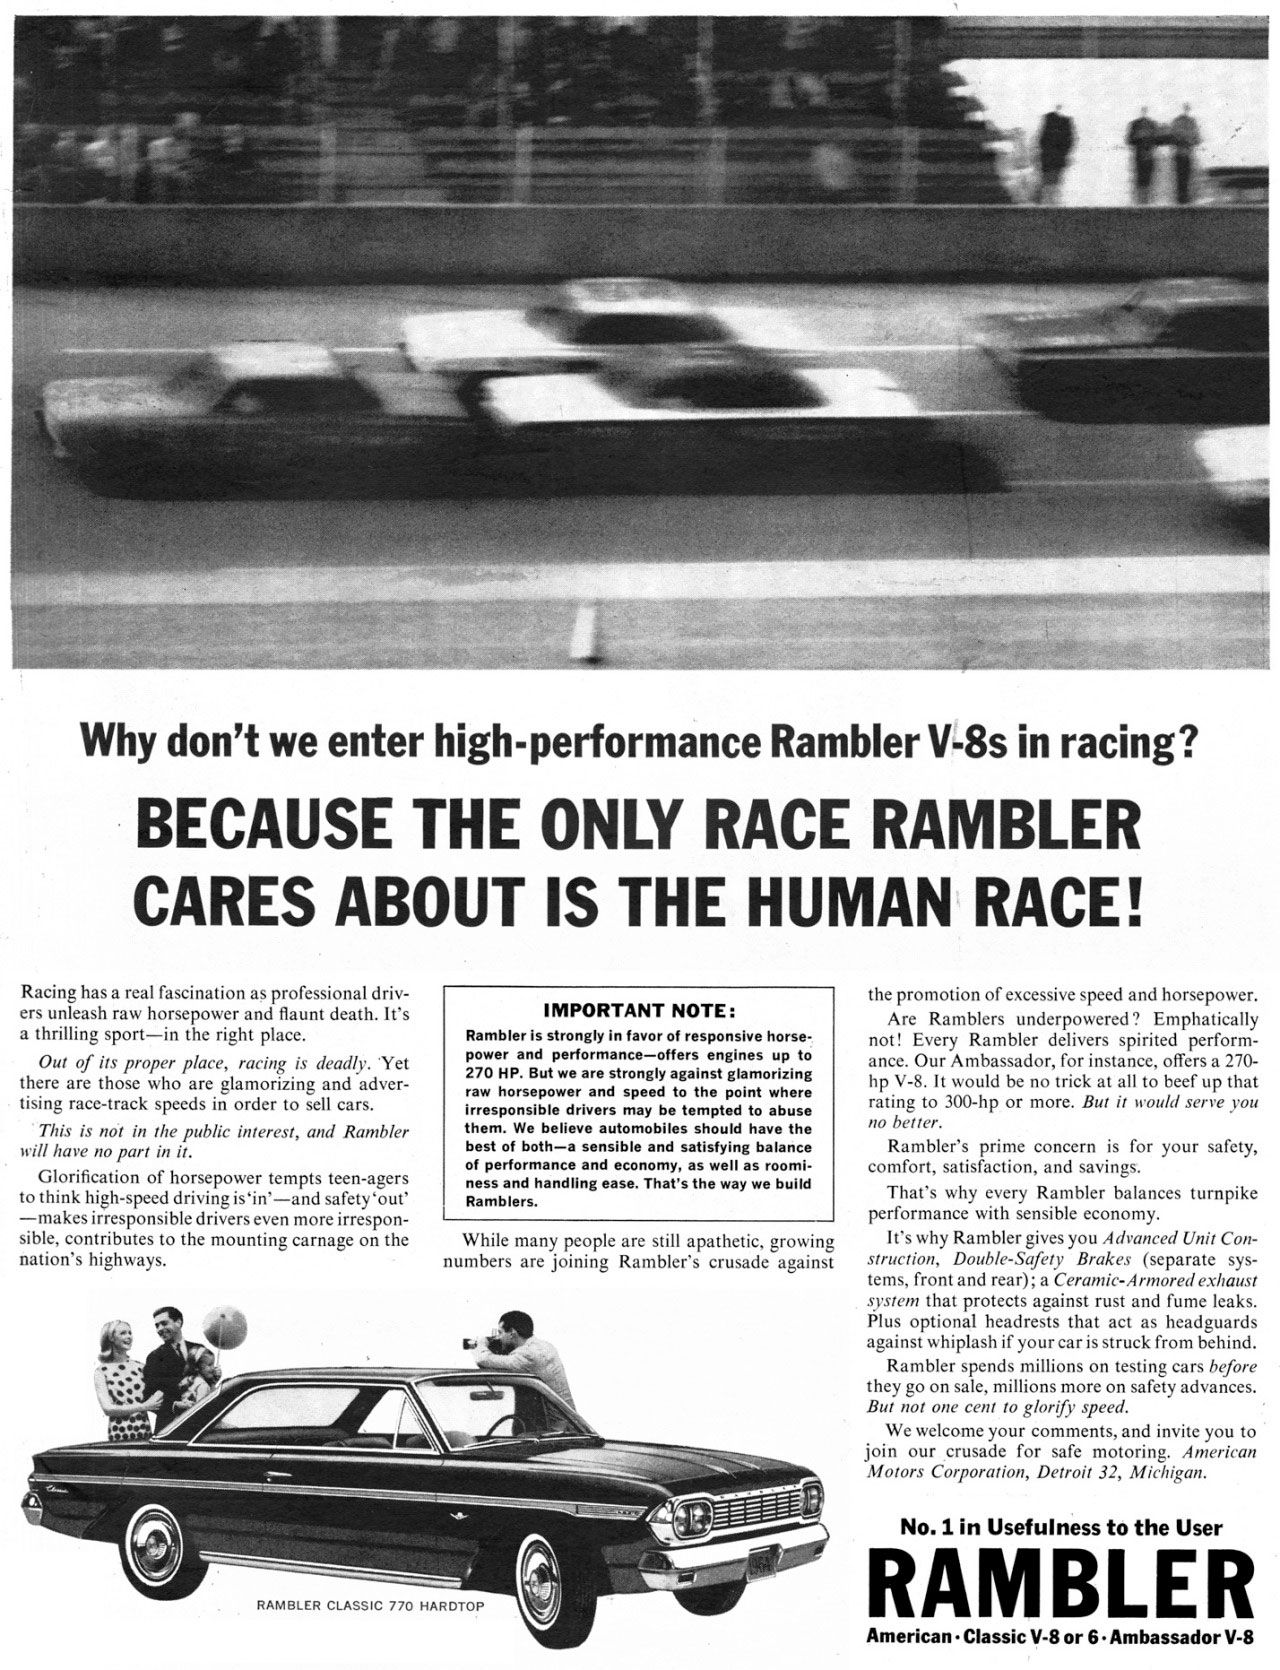 Why don't we enter high-performance Rambler V-8s in racing? Because the only race the American Motors Rambler cares about is the human race!  Racing has a real fascination as professional driv-ers unleash raw horsepower and flaunt death. It's a thrilling sport—in the right place. Out of its proper place, racing is deadly. 'Yet there are those who are glamorizing and adver-tising race-track speeds in order to sell cars. This is not in the public interest, and Rambler will have no part in it. Glorification of horsepower tempts teen-agers to think high-speed driving is`in'—and safety 'out' —makes irresponsible drivers even more irrespon-sible, contributes to the mounting carnage on the nation's highways.  IMPORTANT NOTE: Rambler is strongly in favor of responsive horse-power and performance—offers engines up to 270 HP. But we are strongly against glamorizing raw horsepower and speed to the point where irresponsible drivers may be tempted to abuse them. We believe automobiles should have the best of both—a sensible and satisfying balance of performance and economy, as well as roomi-ness and handling ease. That's the way we build Ramblers.  While many people are still apathetic, growing numbers are joining Rambler's crusade against  the promotion of excessive speed and horsepower. Are Ramblers underpowered? Emphatically not! Every Rambler delivers spirited perform-ance. Our Ambassador, for instance, offers a 270-hp V-8. It would be no trick at all to beef up that rating to 300-hp or more. But it would serve you no better. Rambler's prime concern is for your safety, comfort, satisfaction, and savings. That's why every Rambler balances turnpike performance with sensible economy. It's why Rambler gives you Advanced Unit Con-struction, Double-Safety Brakes (separate sys-tems, front and rear); a Ceramic-Armored exhaust system that protects against rust and fume leaks. Plus optional headrests that act as headguards against whiplash if your car is struck from behind. Rambler spends millions on testing cars before they go on sale, millions more on safety advances. But not one cent to glorify speed. We welcome your comments, and invite you to join our crusade for safe motoring. American Motors Corporation, Detroit 32, Michigan.  No. 1 in Usefulness to the User  RAMBLER  American • Classic V-8 or 6. Ambassador V-8